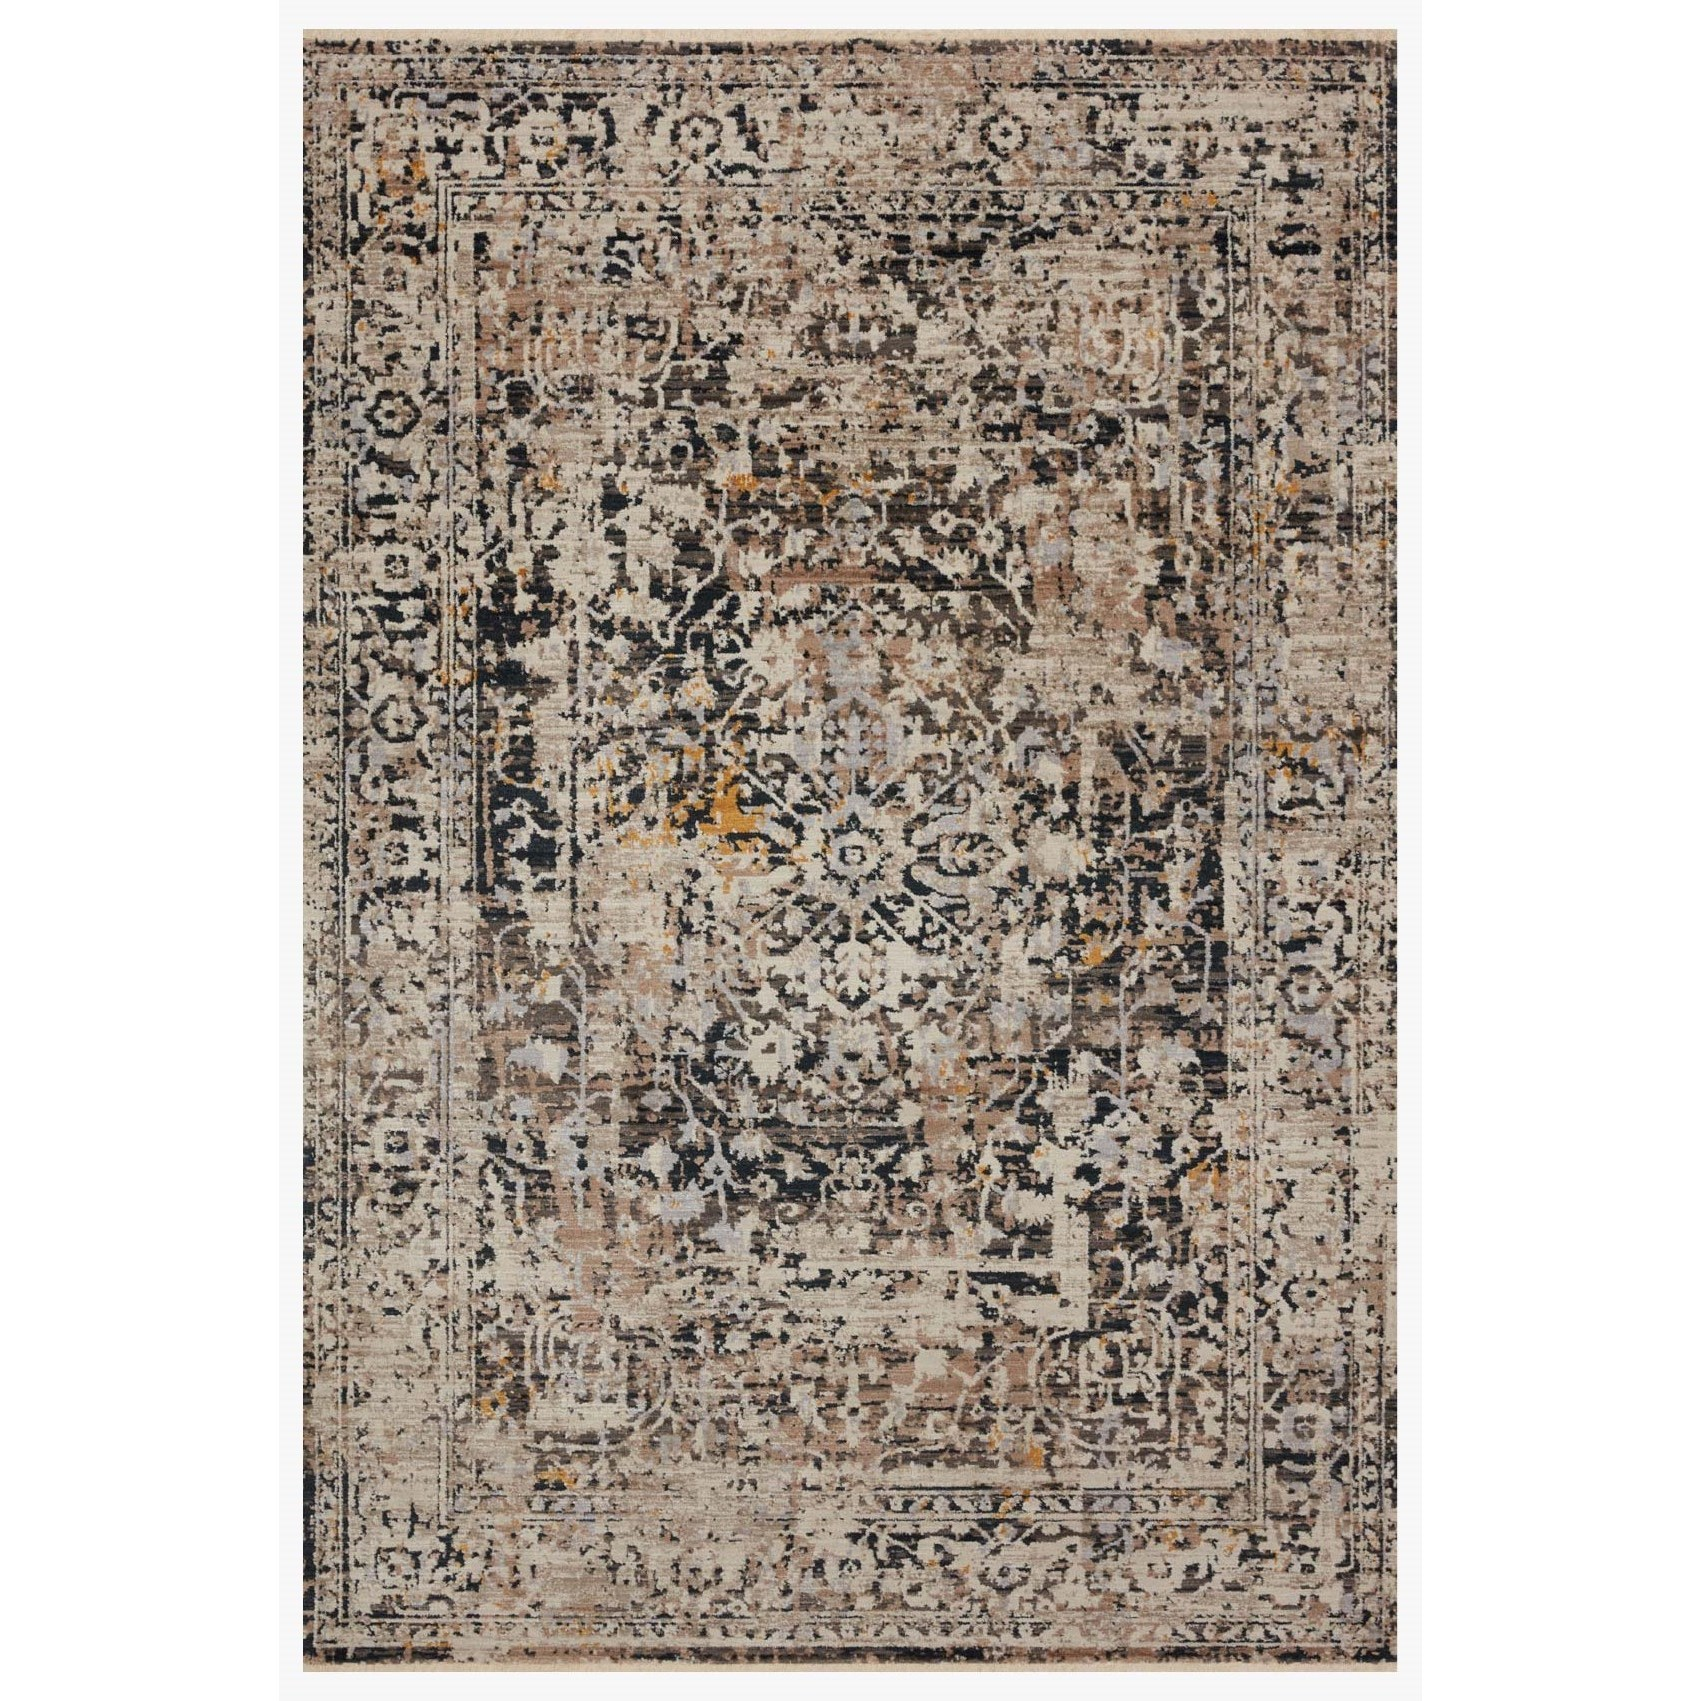 """Leigh 6'7"""" x 9'6"""" Charcoal / Taupe Rug by Loloi Rugs at Virginia Furniture Market"""